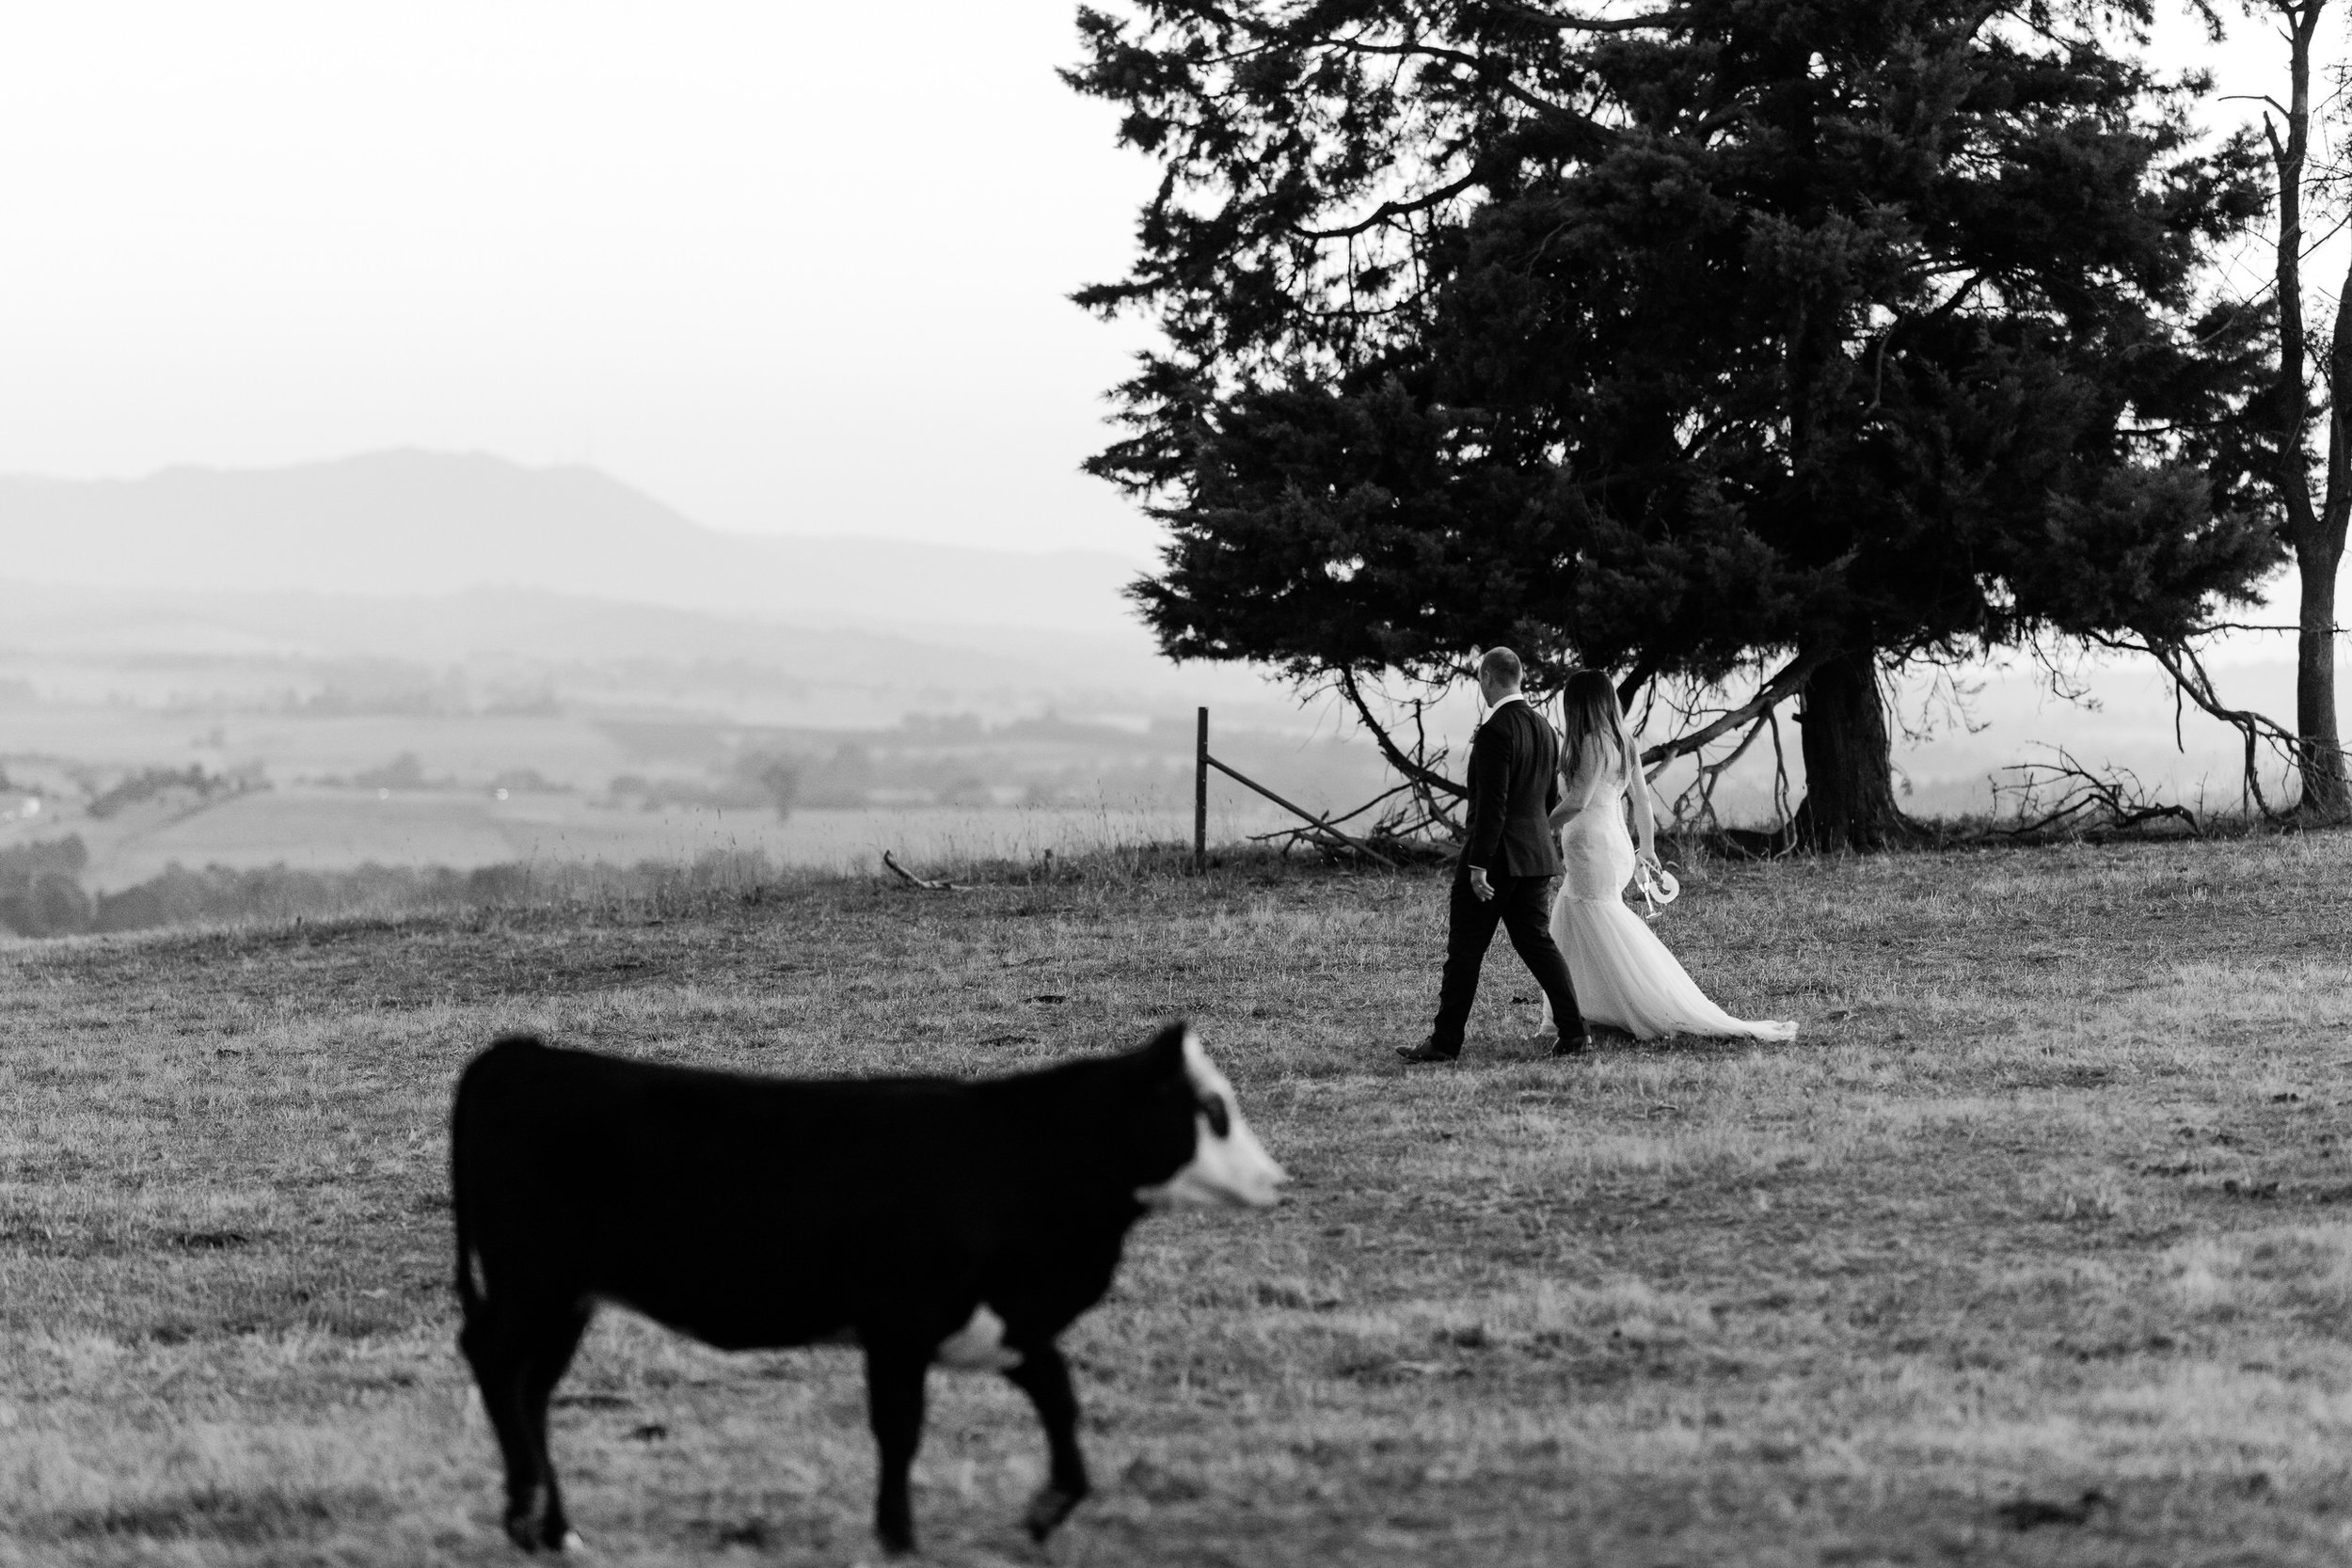 Justin_And_Jim_Photography_Balgownie_Winery_Wedding59.JPG